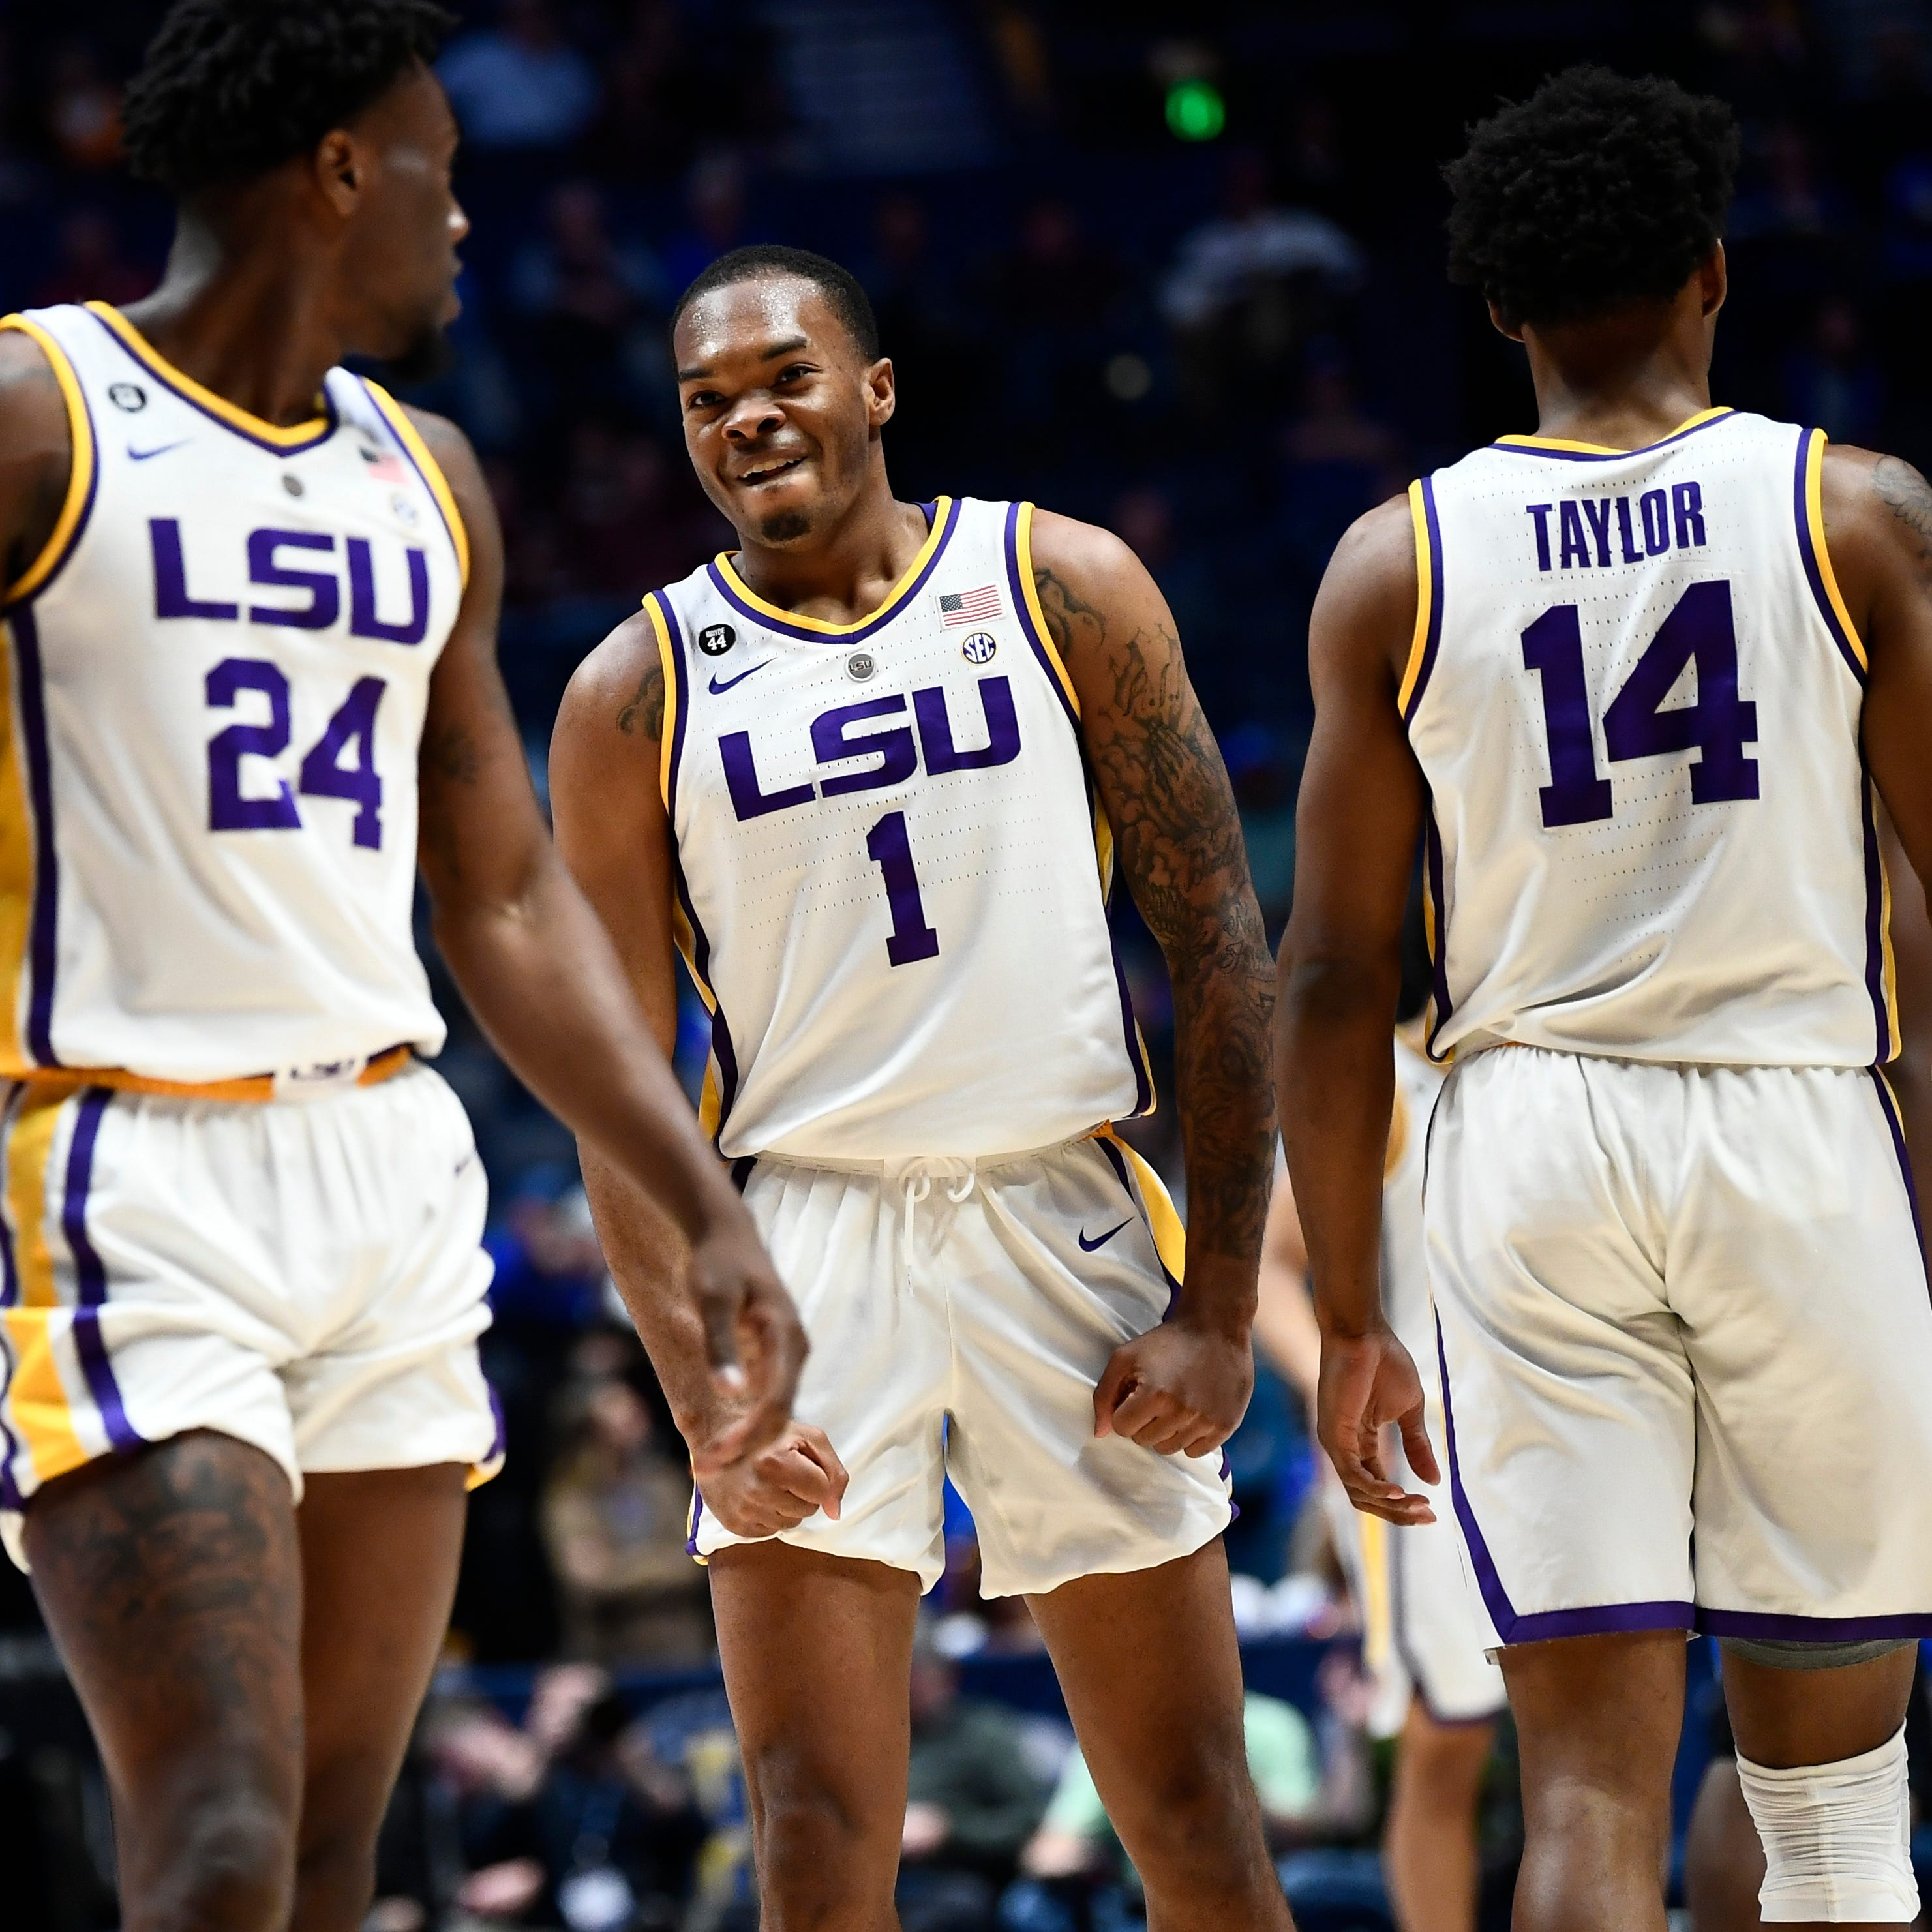 After 1-game all clear last week, LSU's Smart can play through NCAA Tournament, unless ...